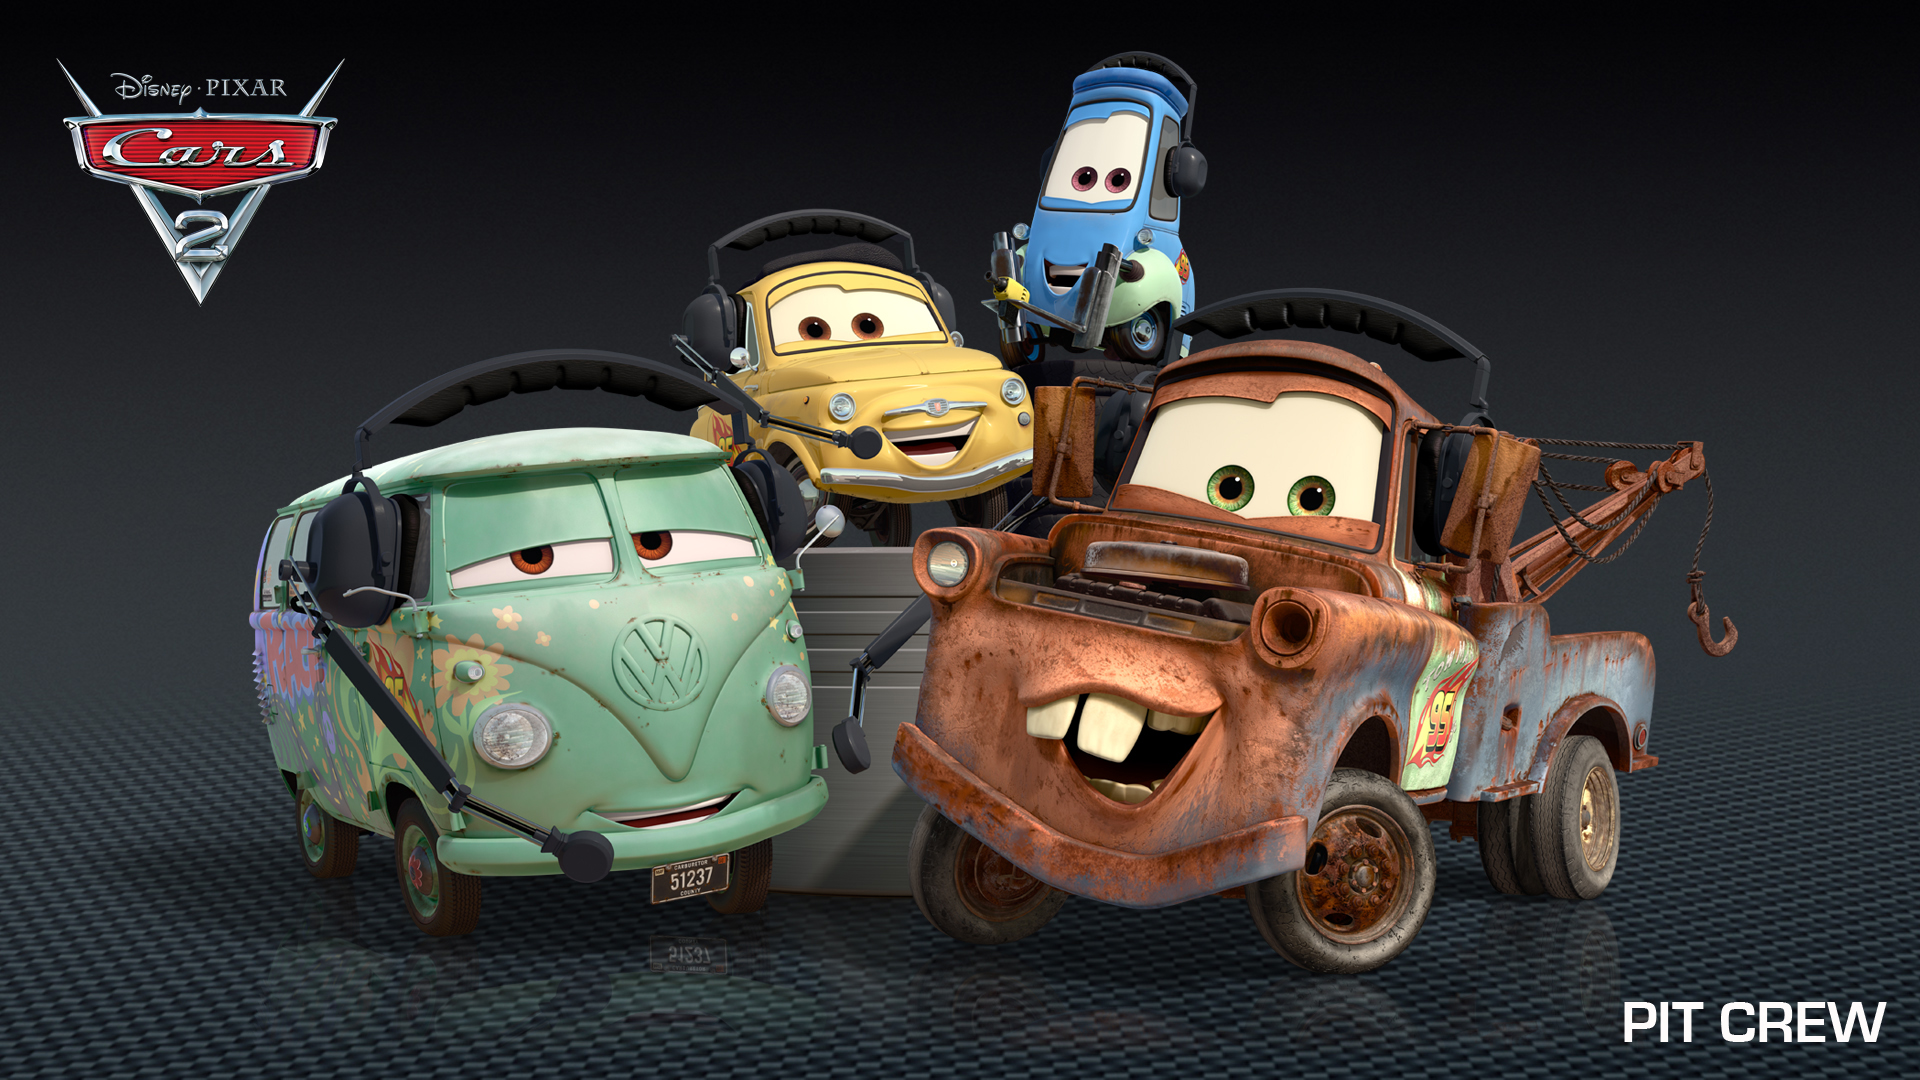 Cars 2 Character Images, Descriptions, Video